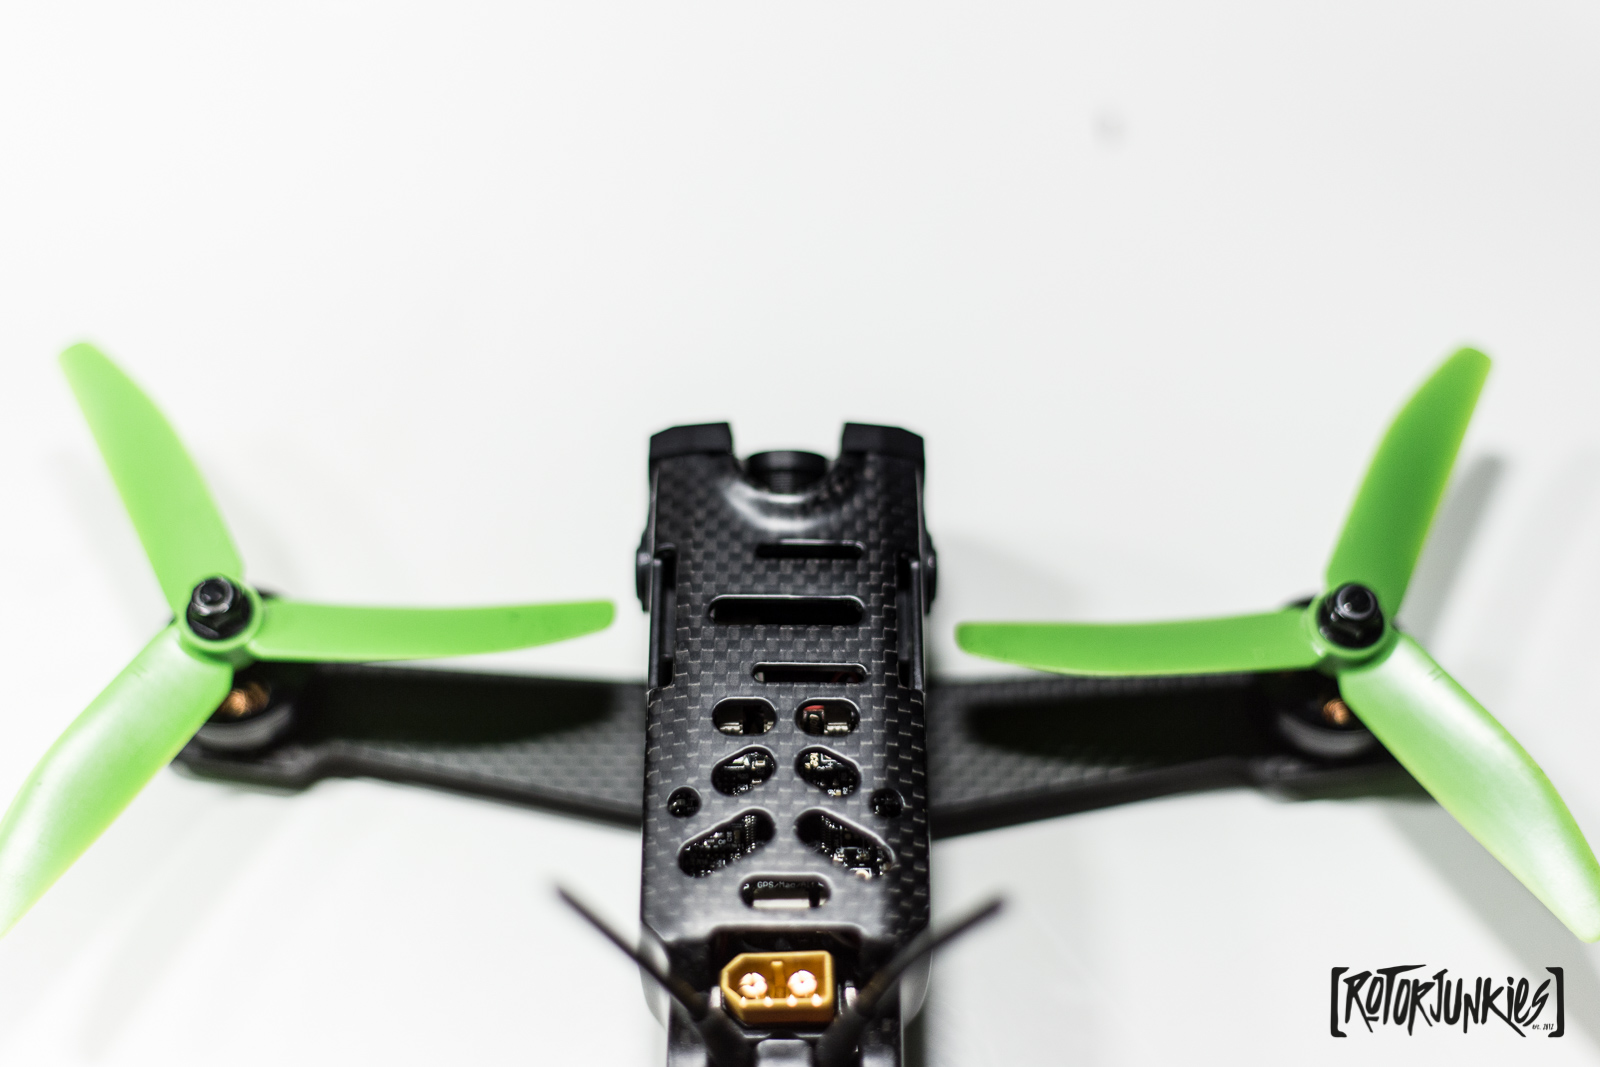 TBS Vendetta - RTF FPV Racer im Test - team blacksheep, tbs